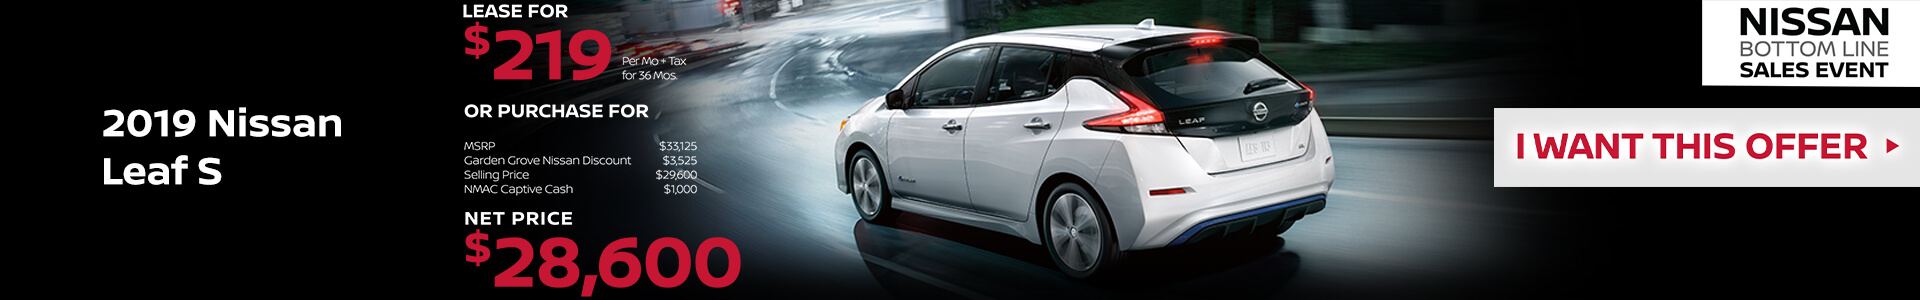 2019 Nissan Leaf Lease for $219